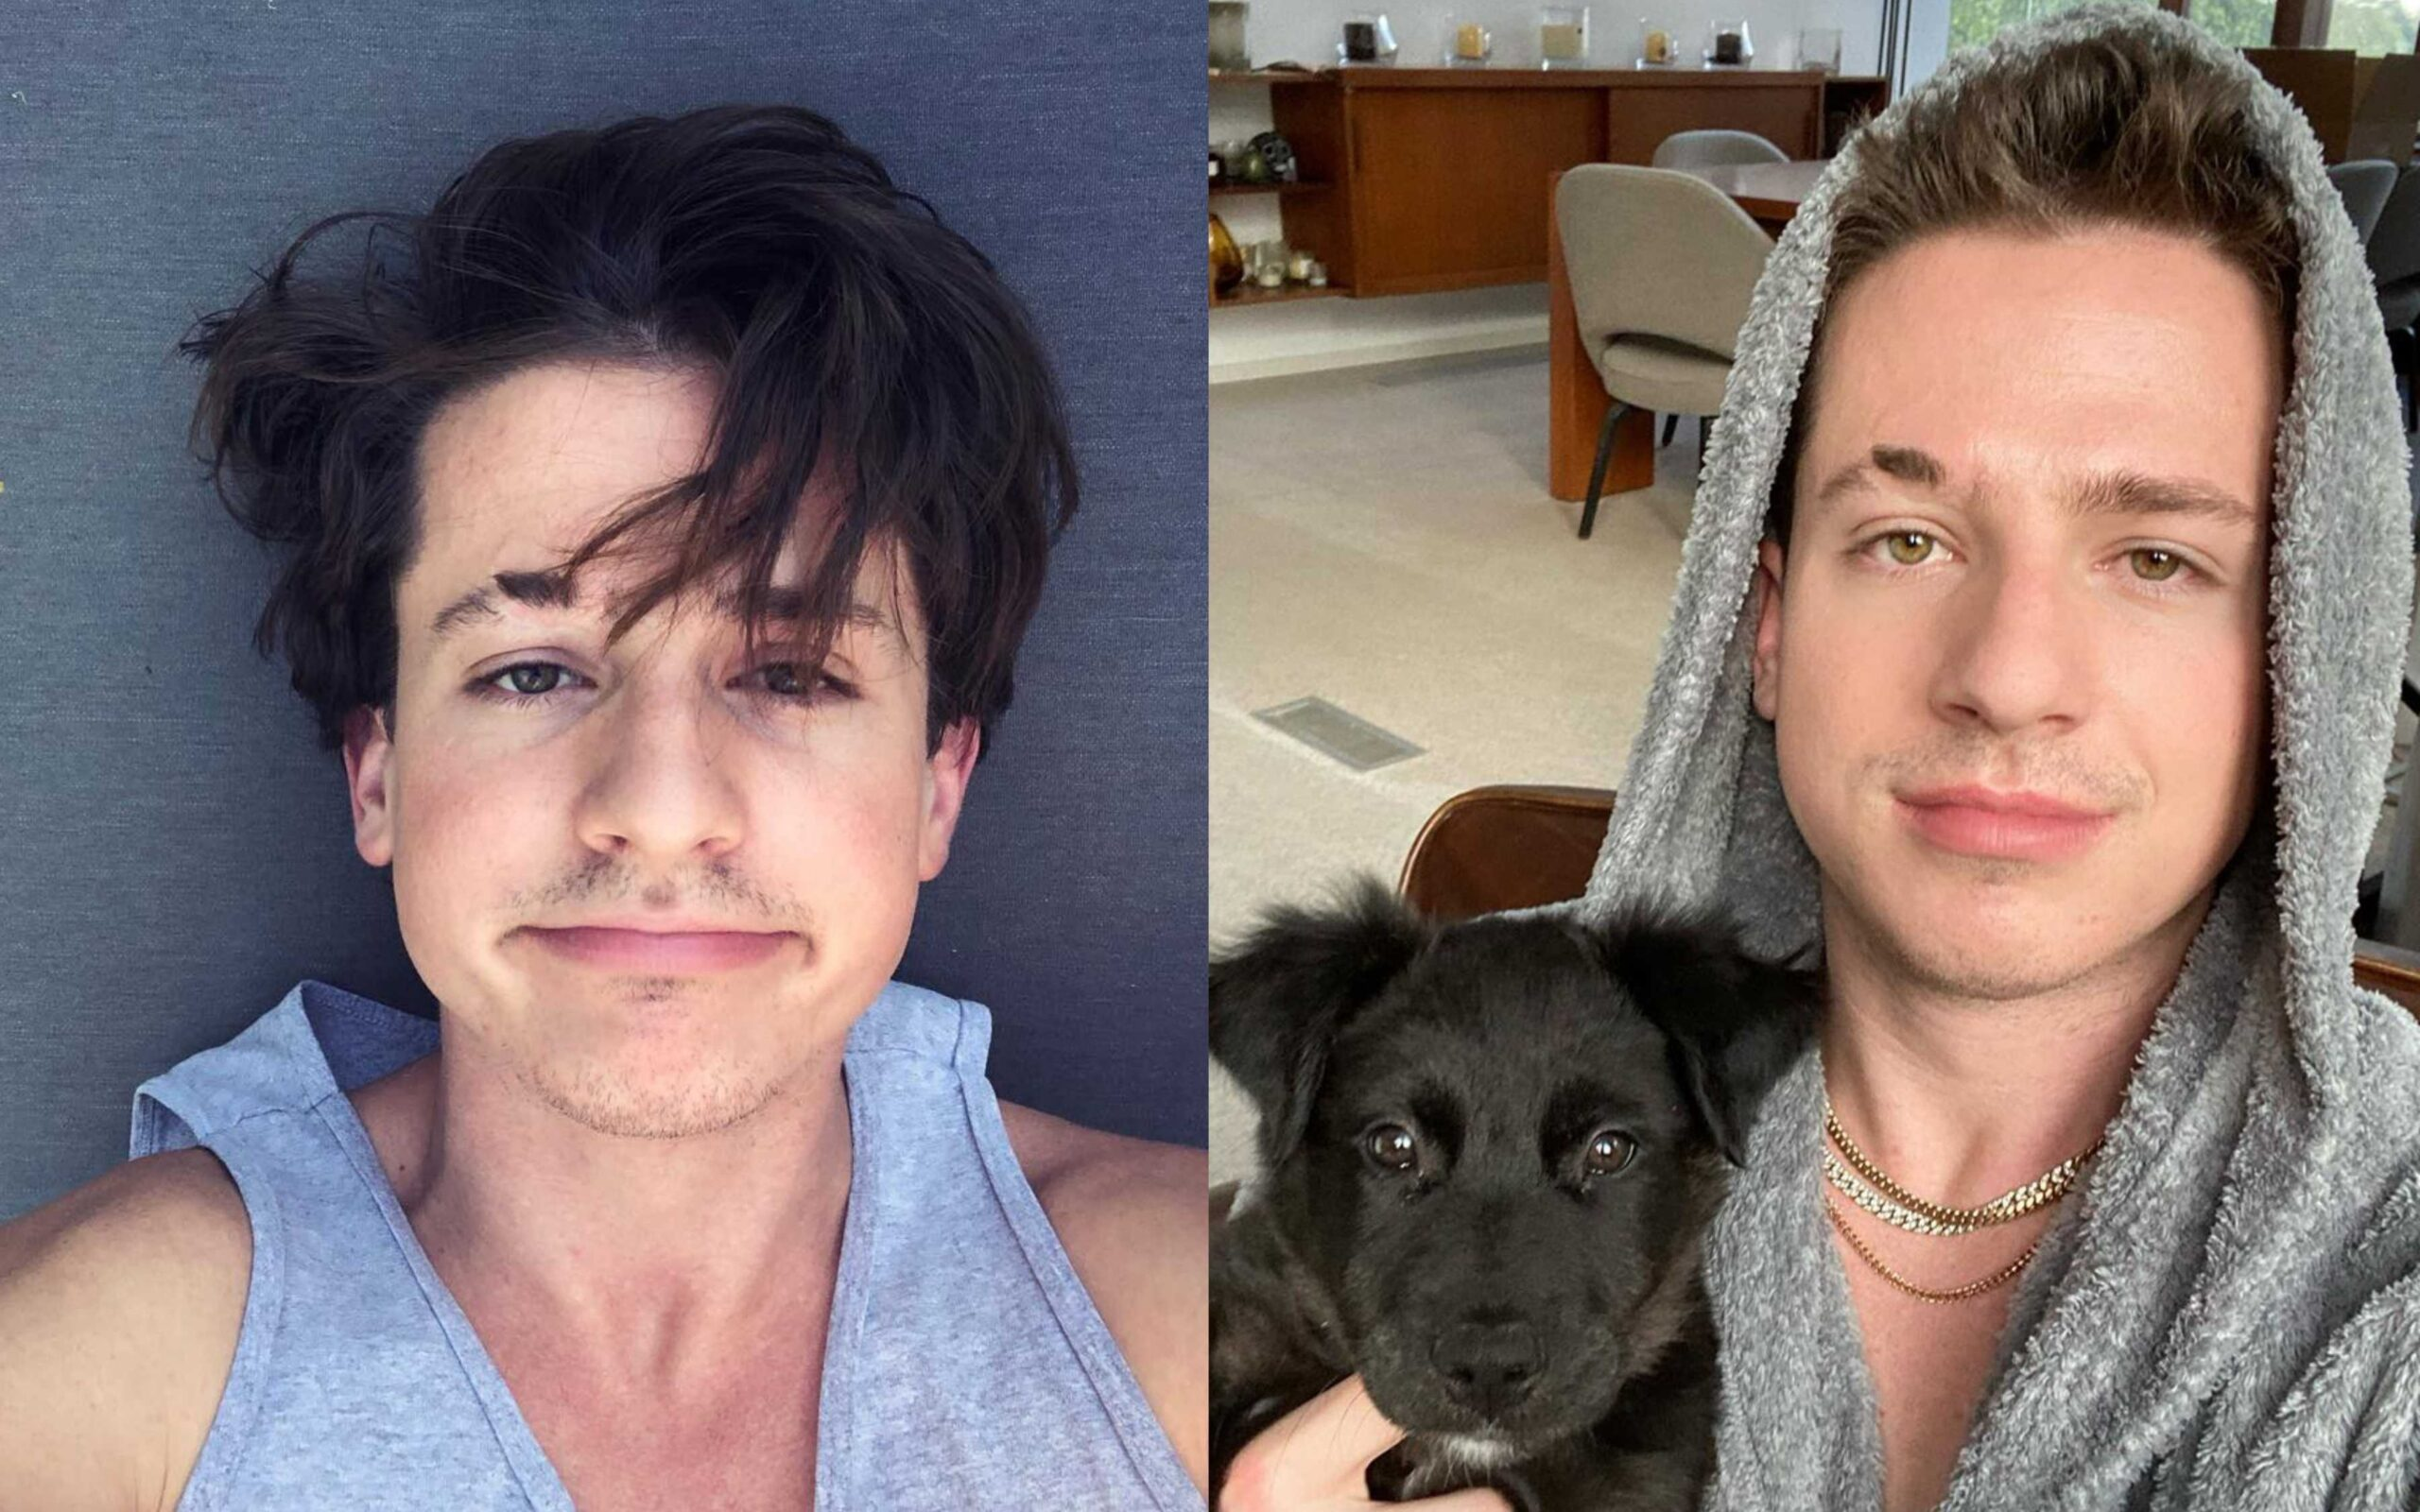 charlie puth top 10 most liked pictures on instagram moneyscotch charlie puth top 10 most liked